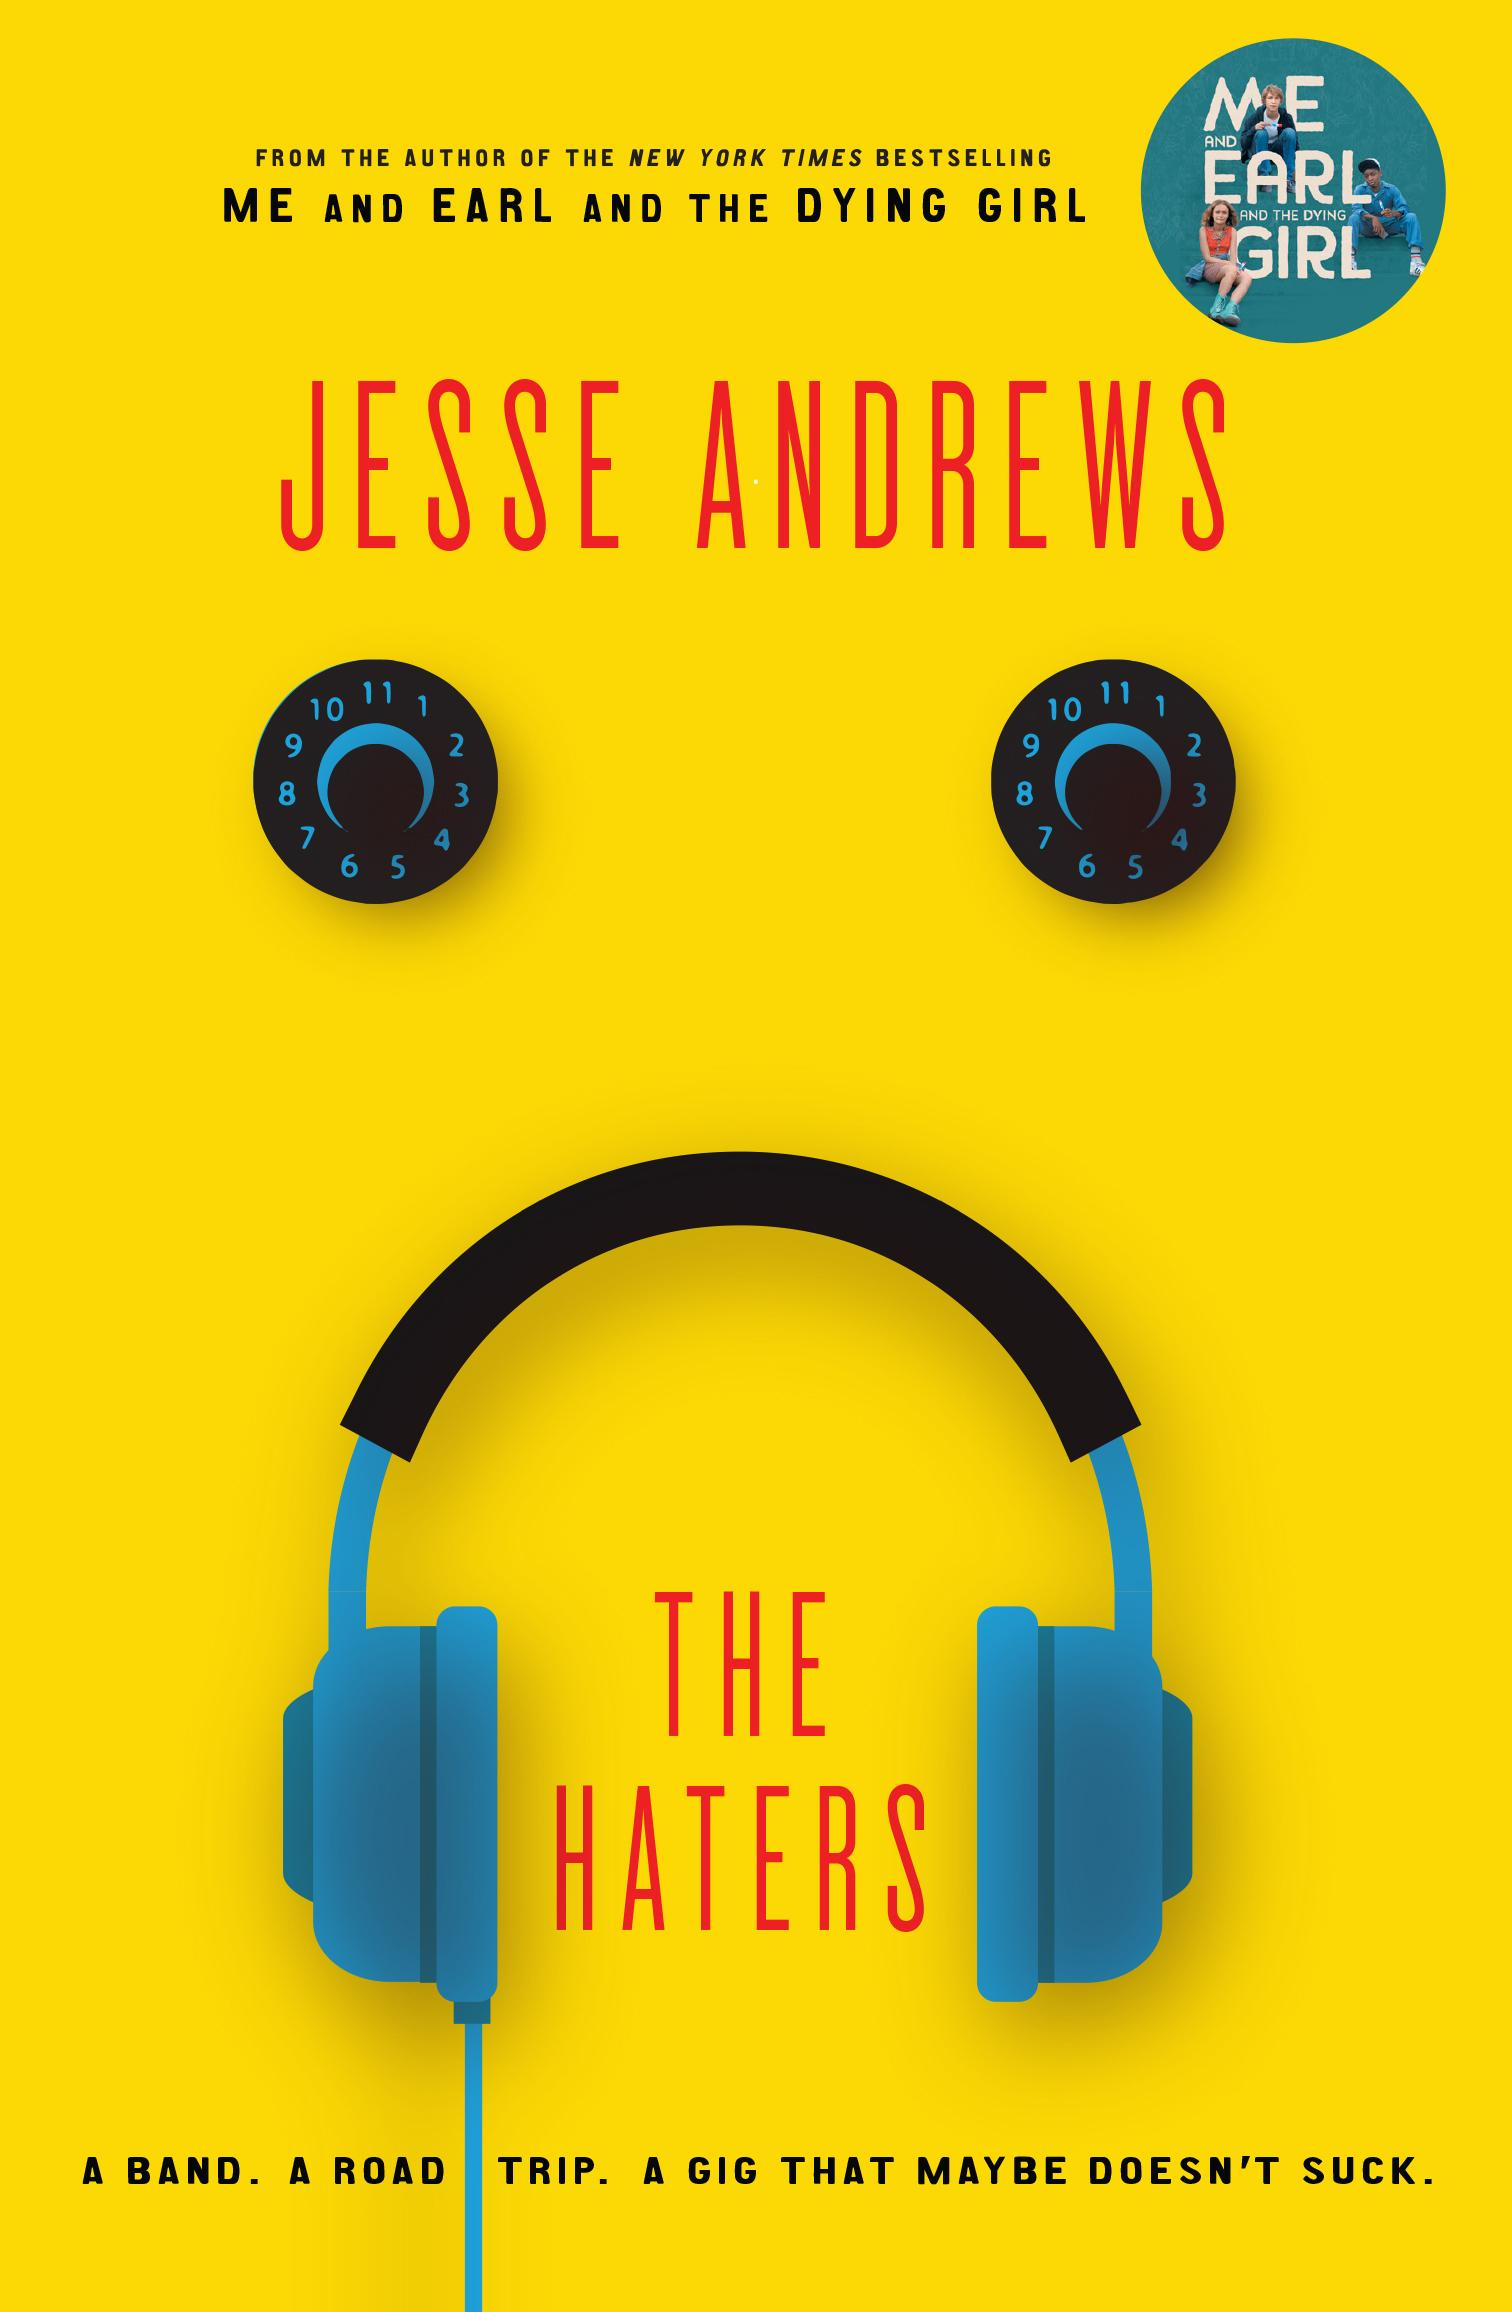 The Haters: The New Ya Bestseller from the Author of Me and Earl and the Dying Girl